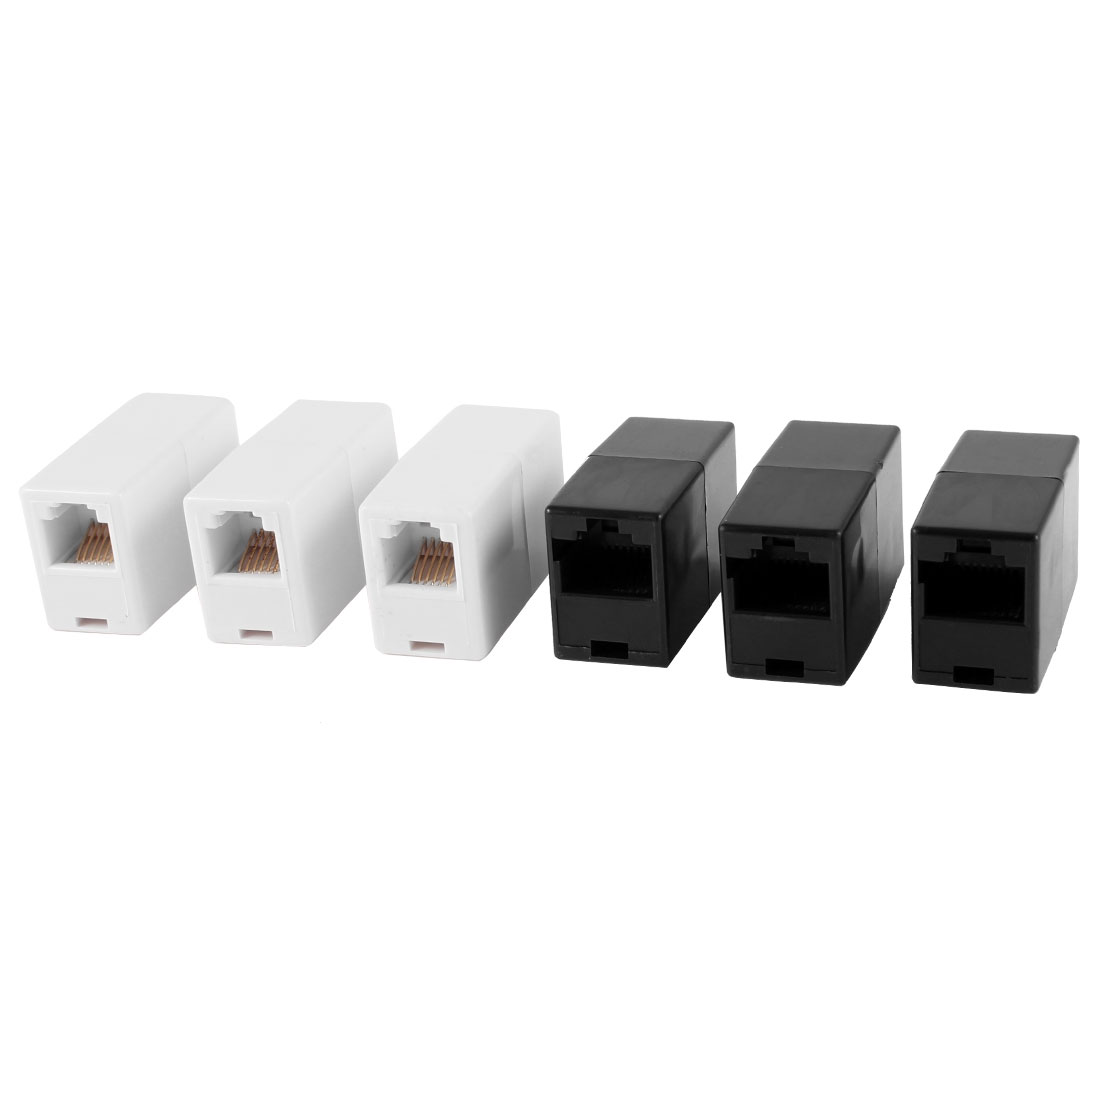 3 Pcs White RJ11 6P6C Telephone Cable Coupler + 3 Pcs Black RJ45 8P8C Ethernet Connector